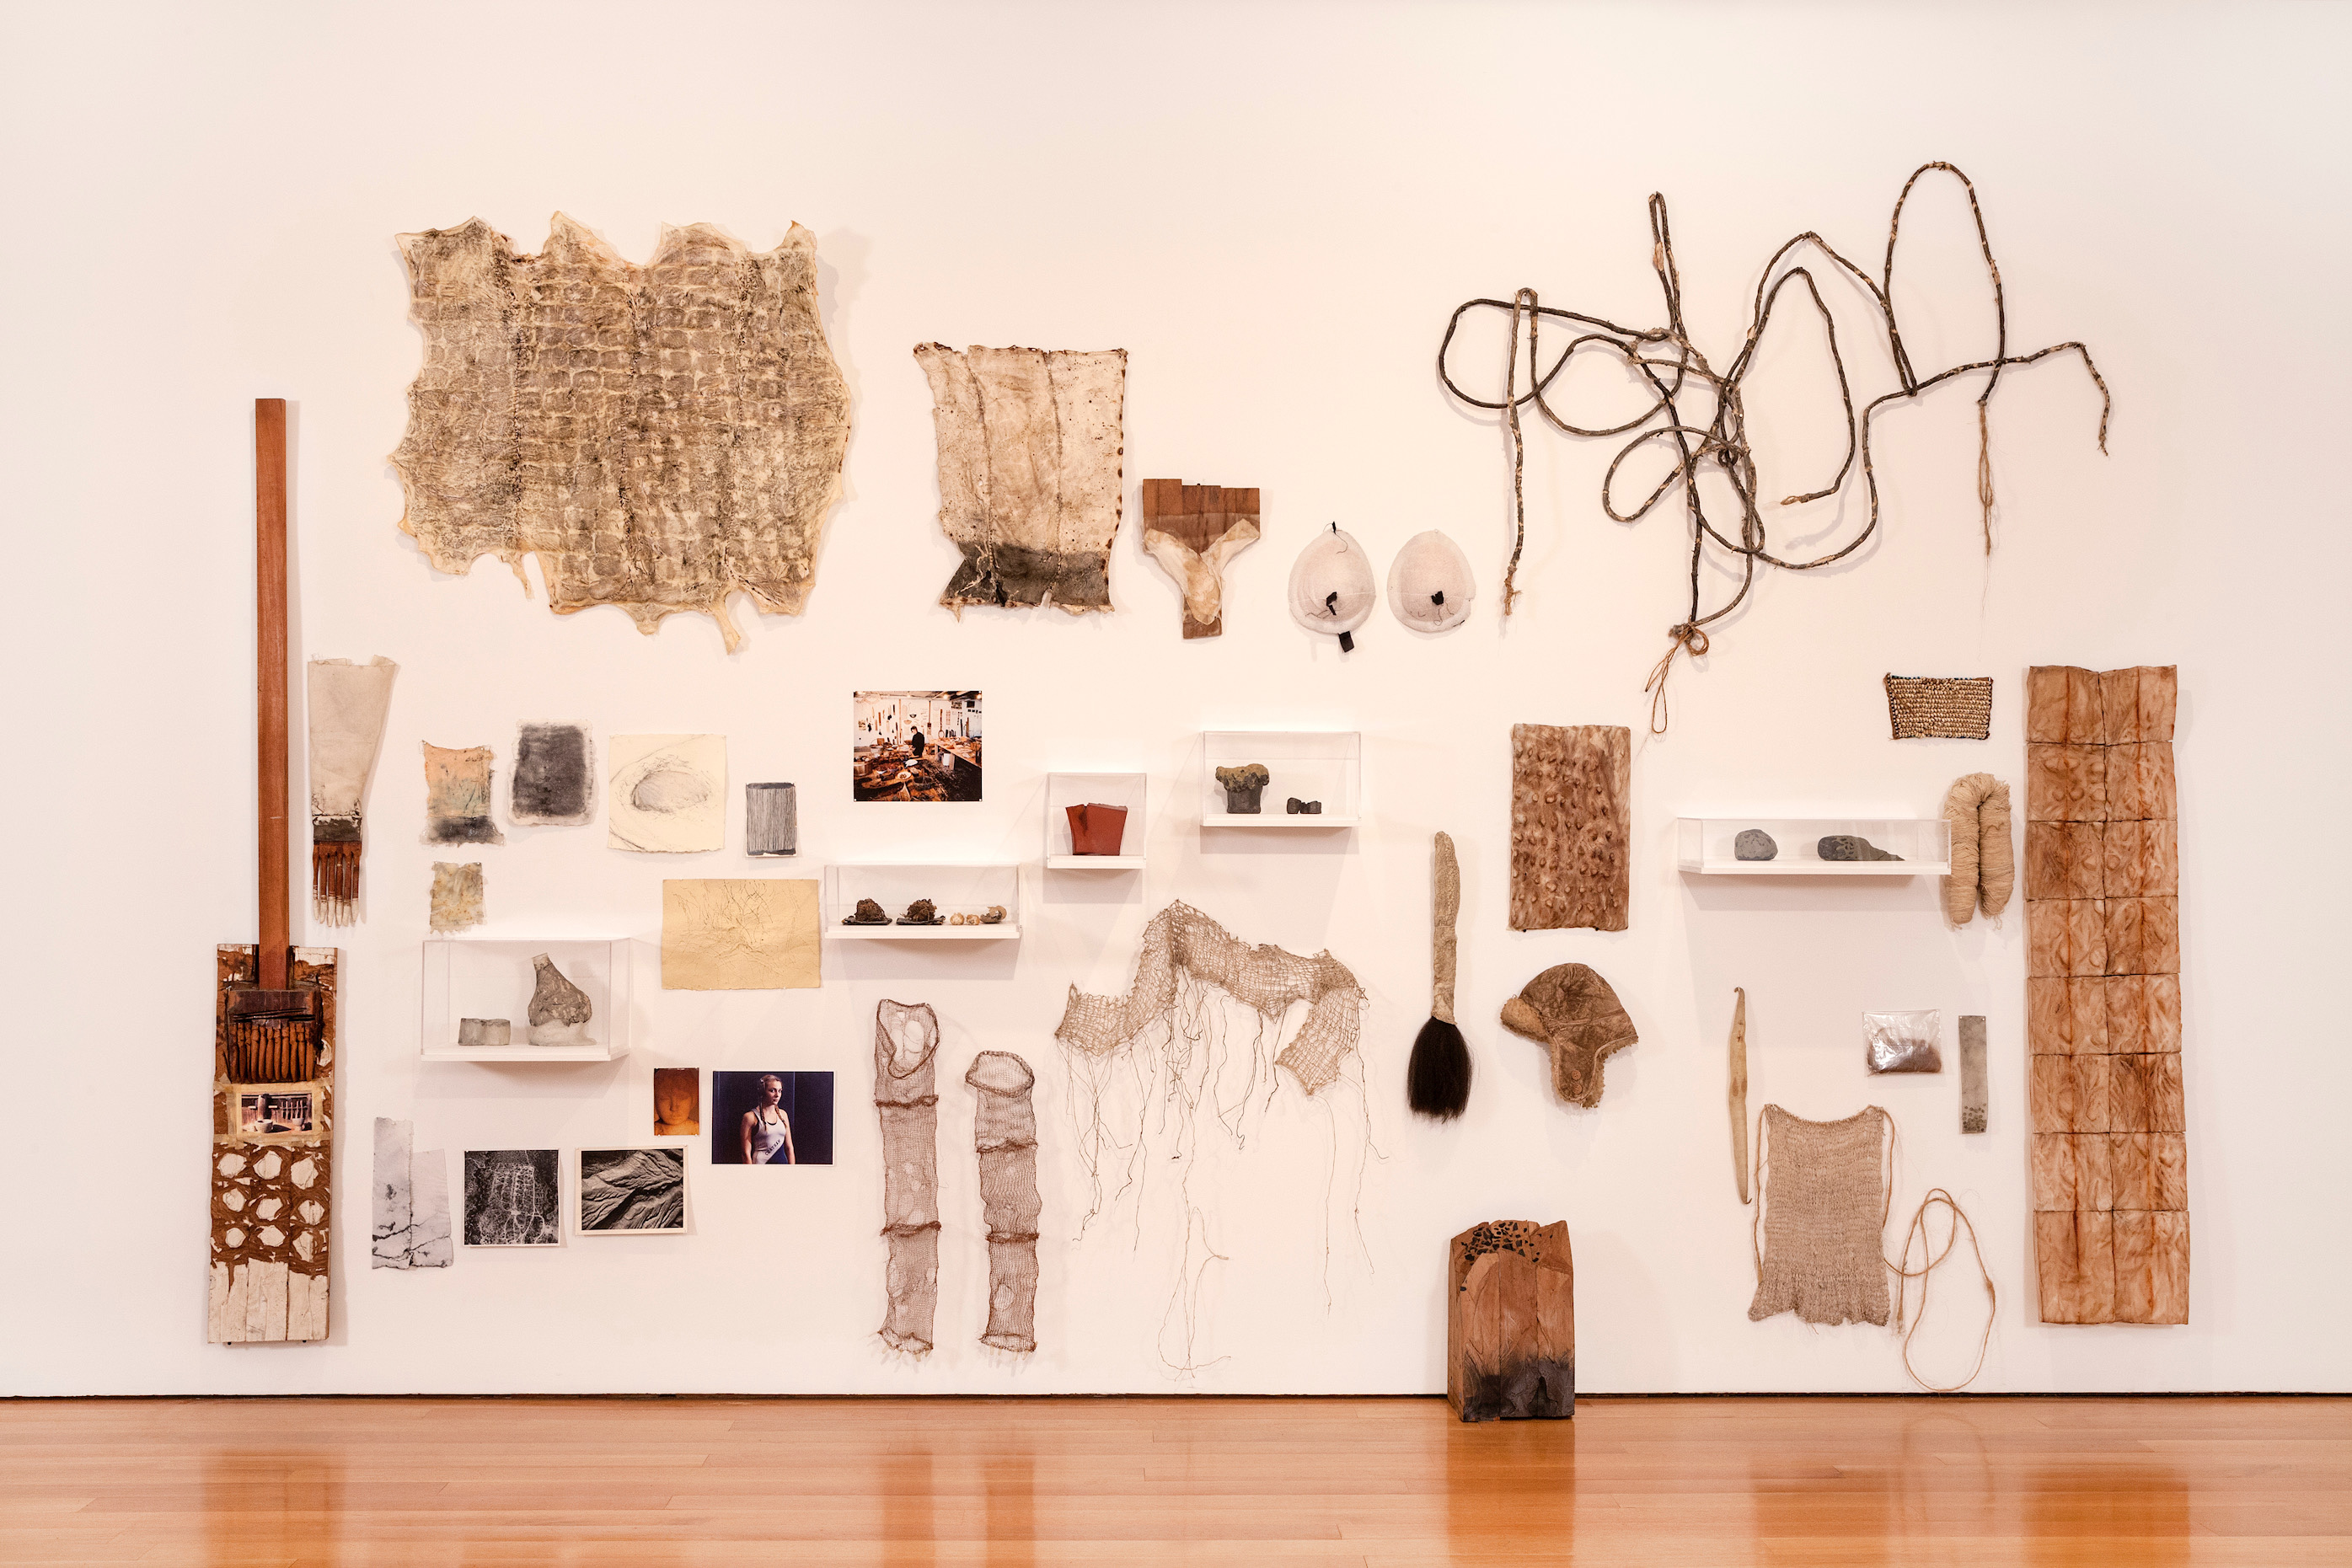 Ursula von Rydingsvard, little nothings, 2000–15; Items including cedar objects, drawings on paper, copper wires, photographs, tools, threads, and lace, dimensions variable; © Ursula von Rydingsvard, Courtesy of Galerie Lelong & Co.; Photo by Carlos Avendaño.